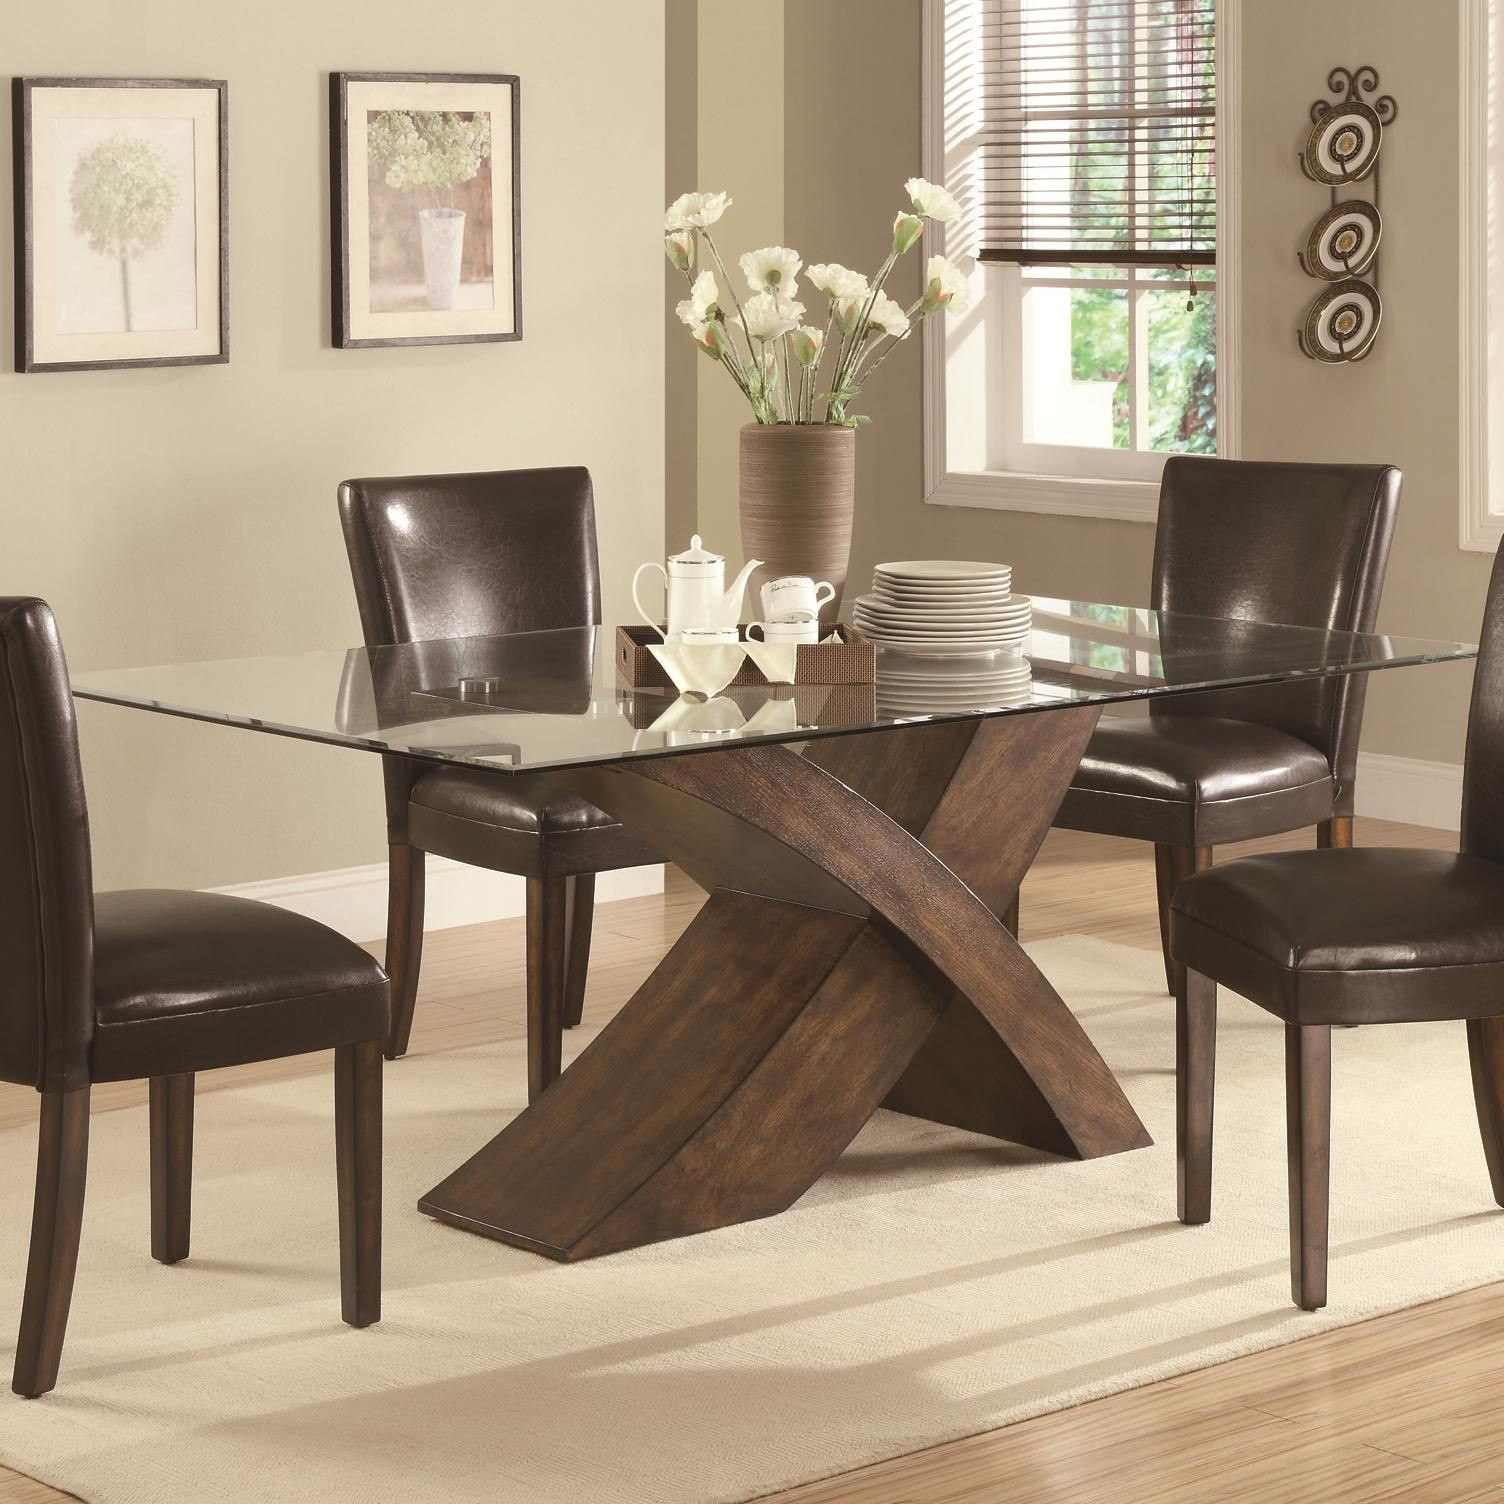 Glass Dining Table With Wood Base Foter